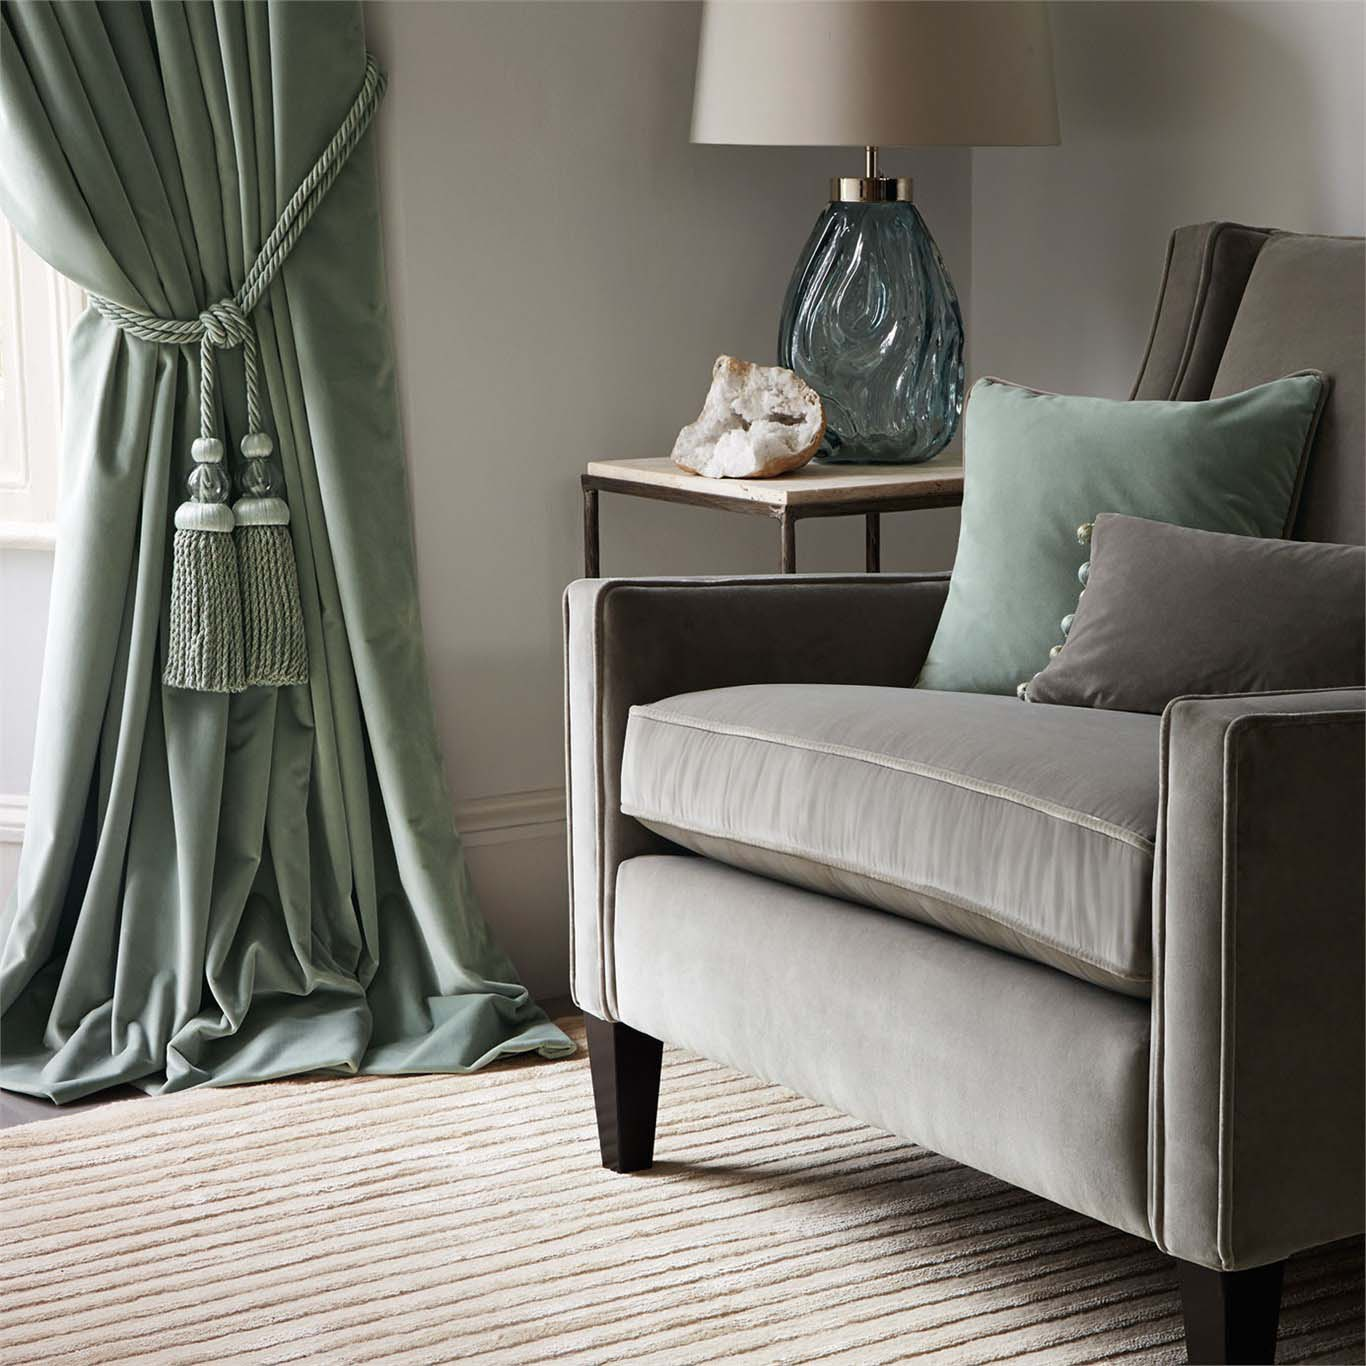 Chair and cushions with curtains and accessories in lounge area